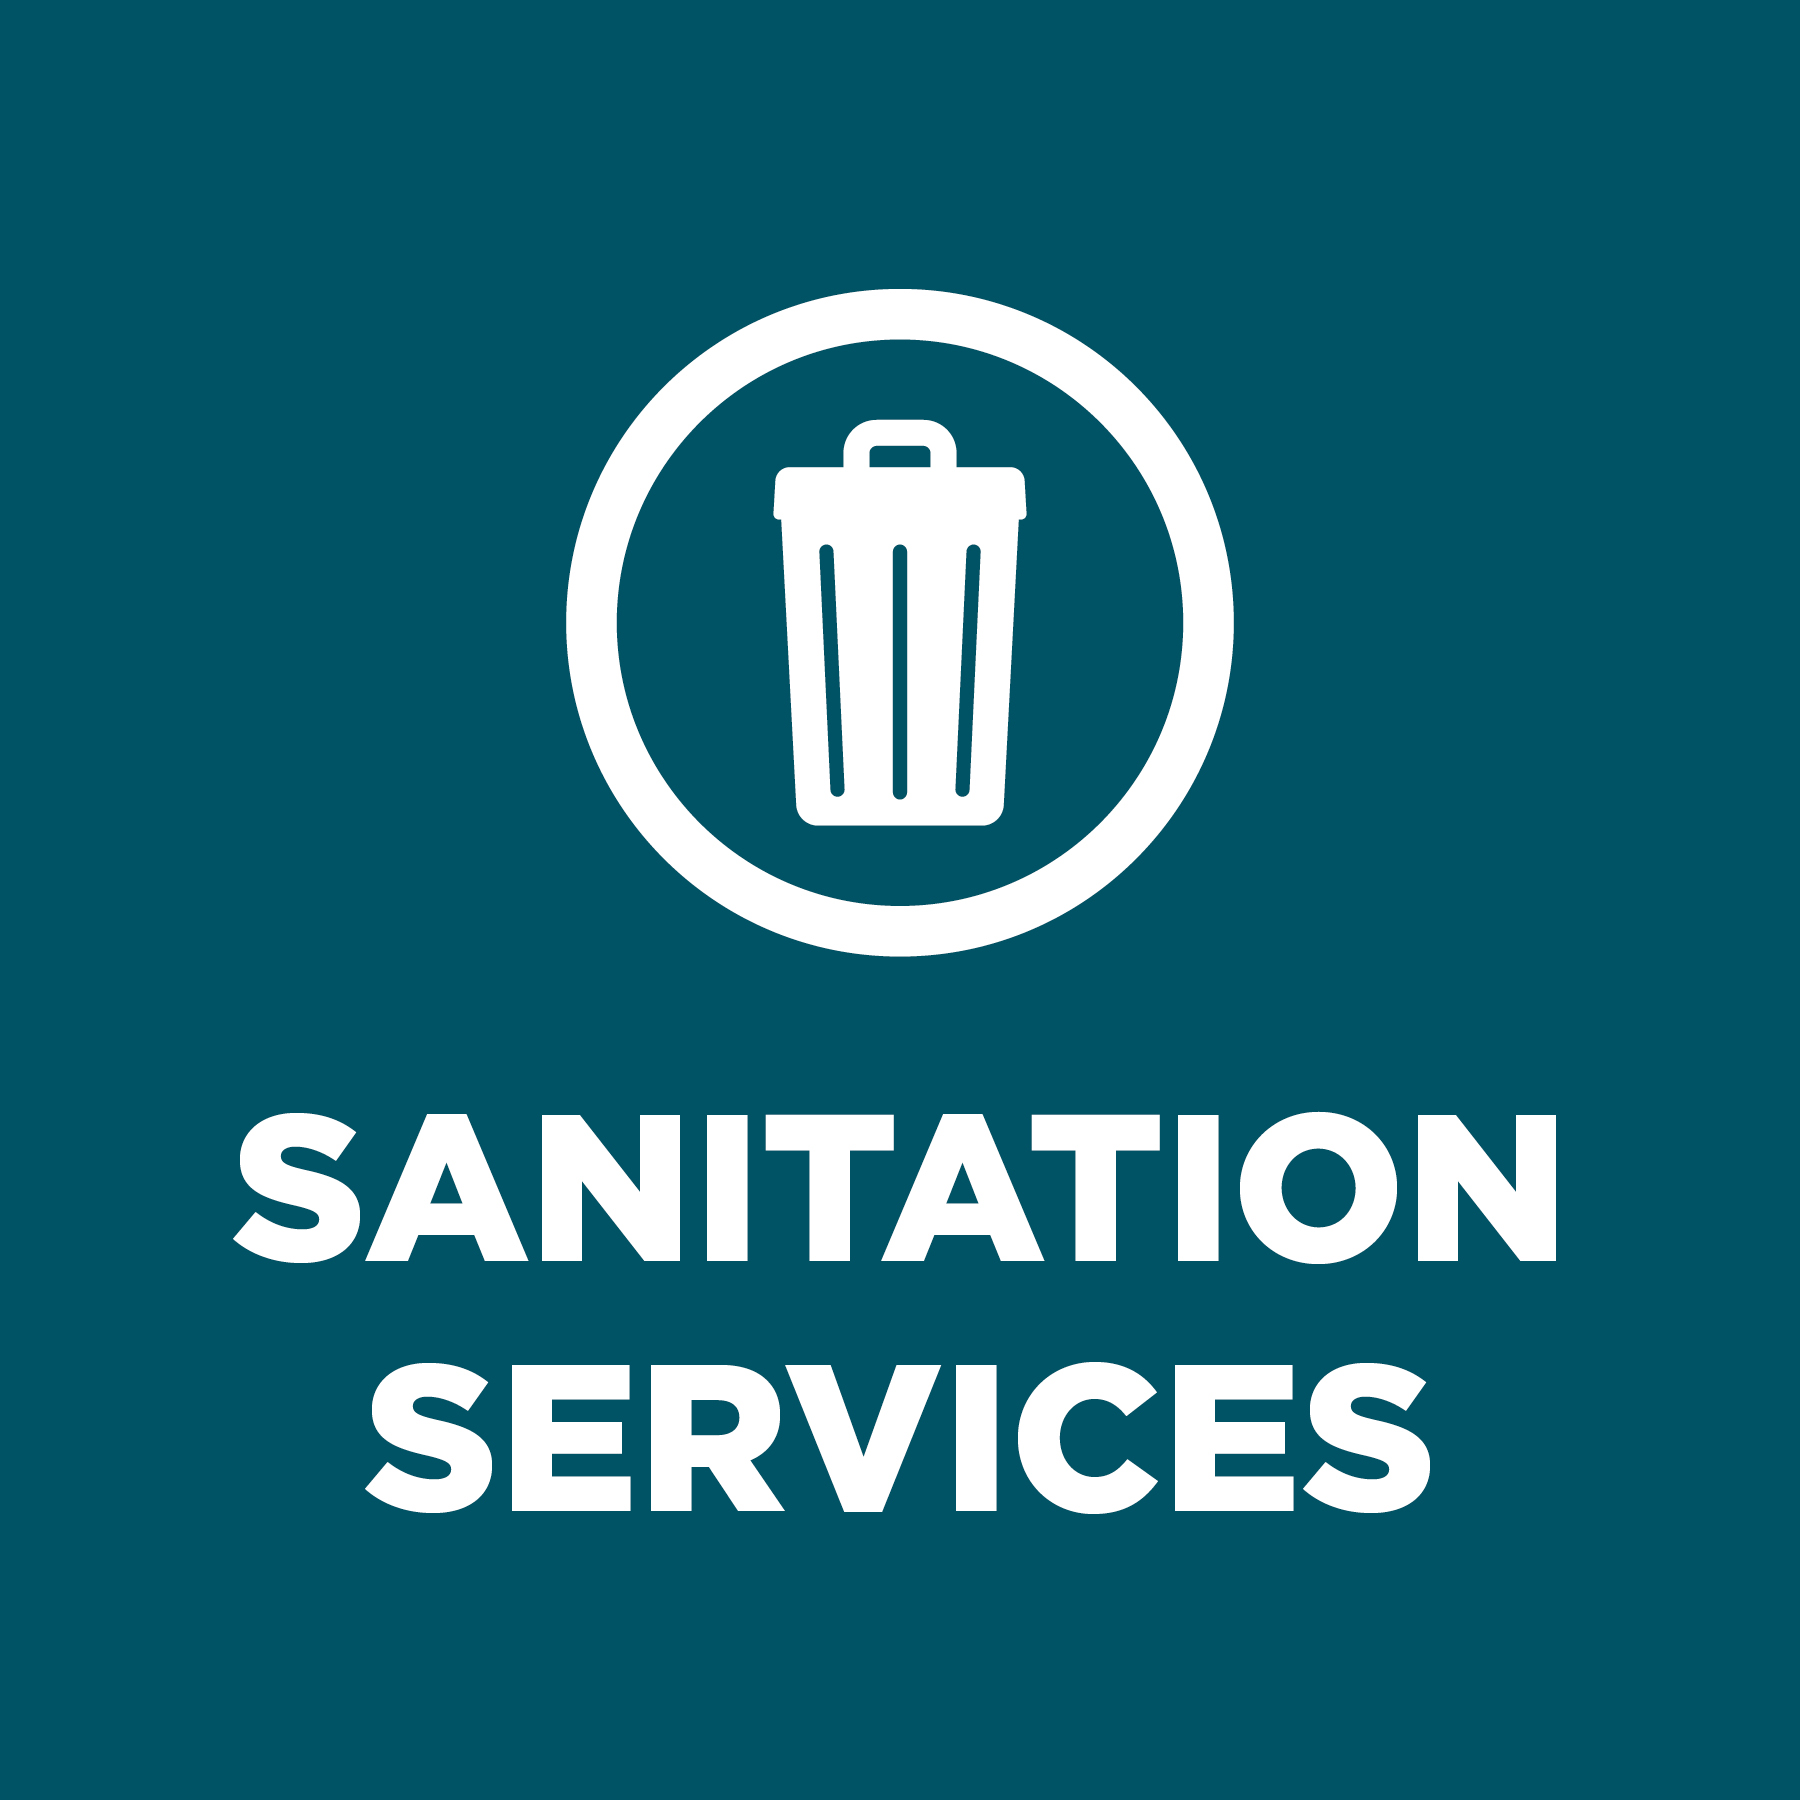 Sanitation Services